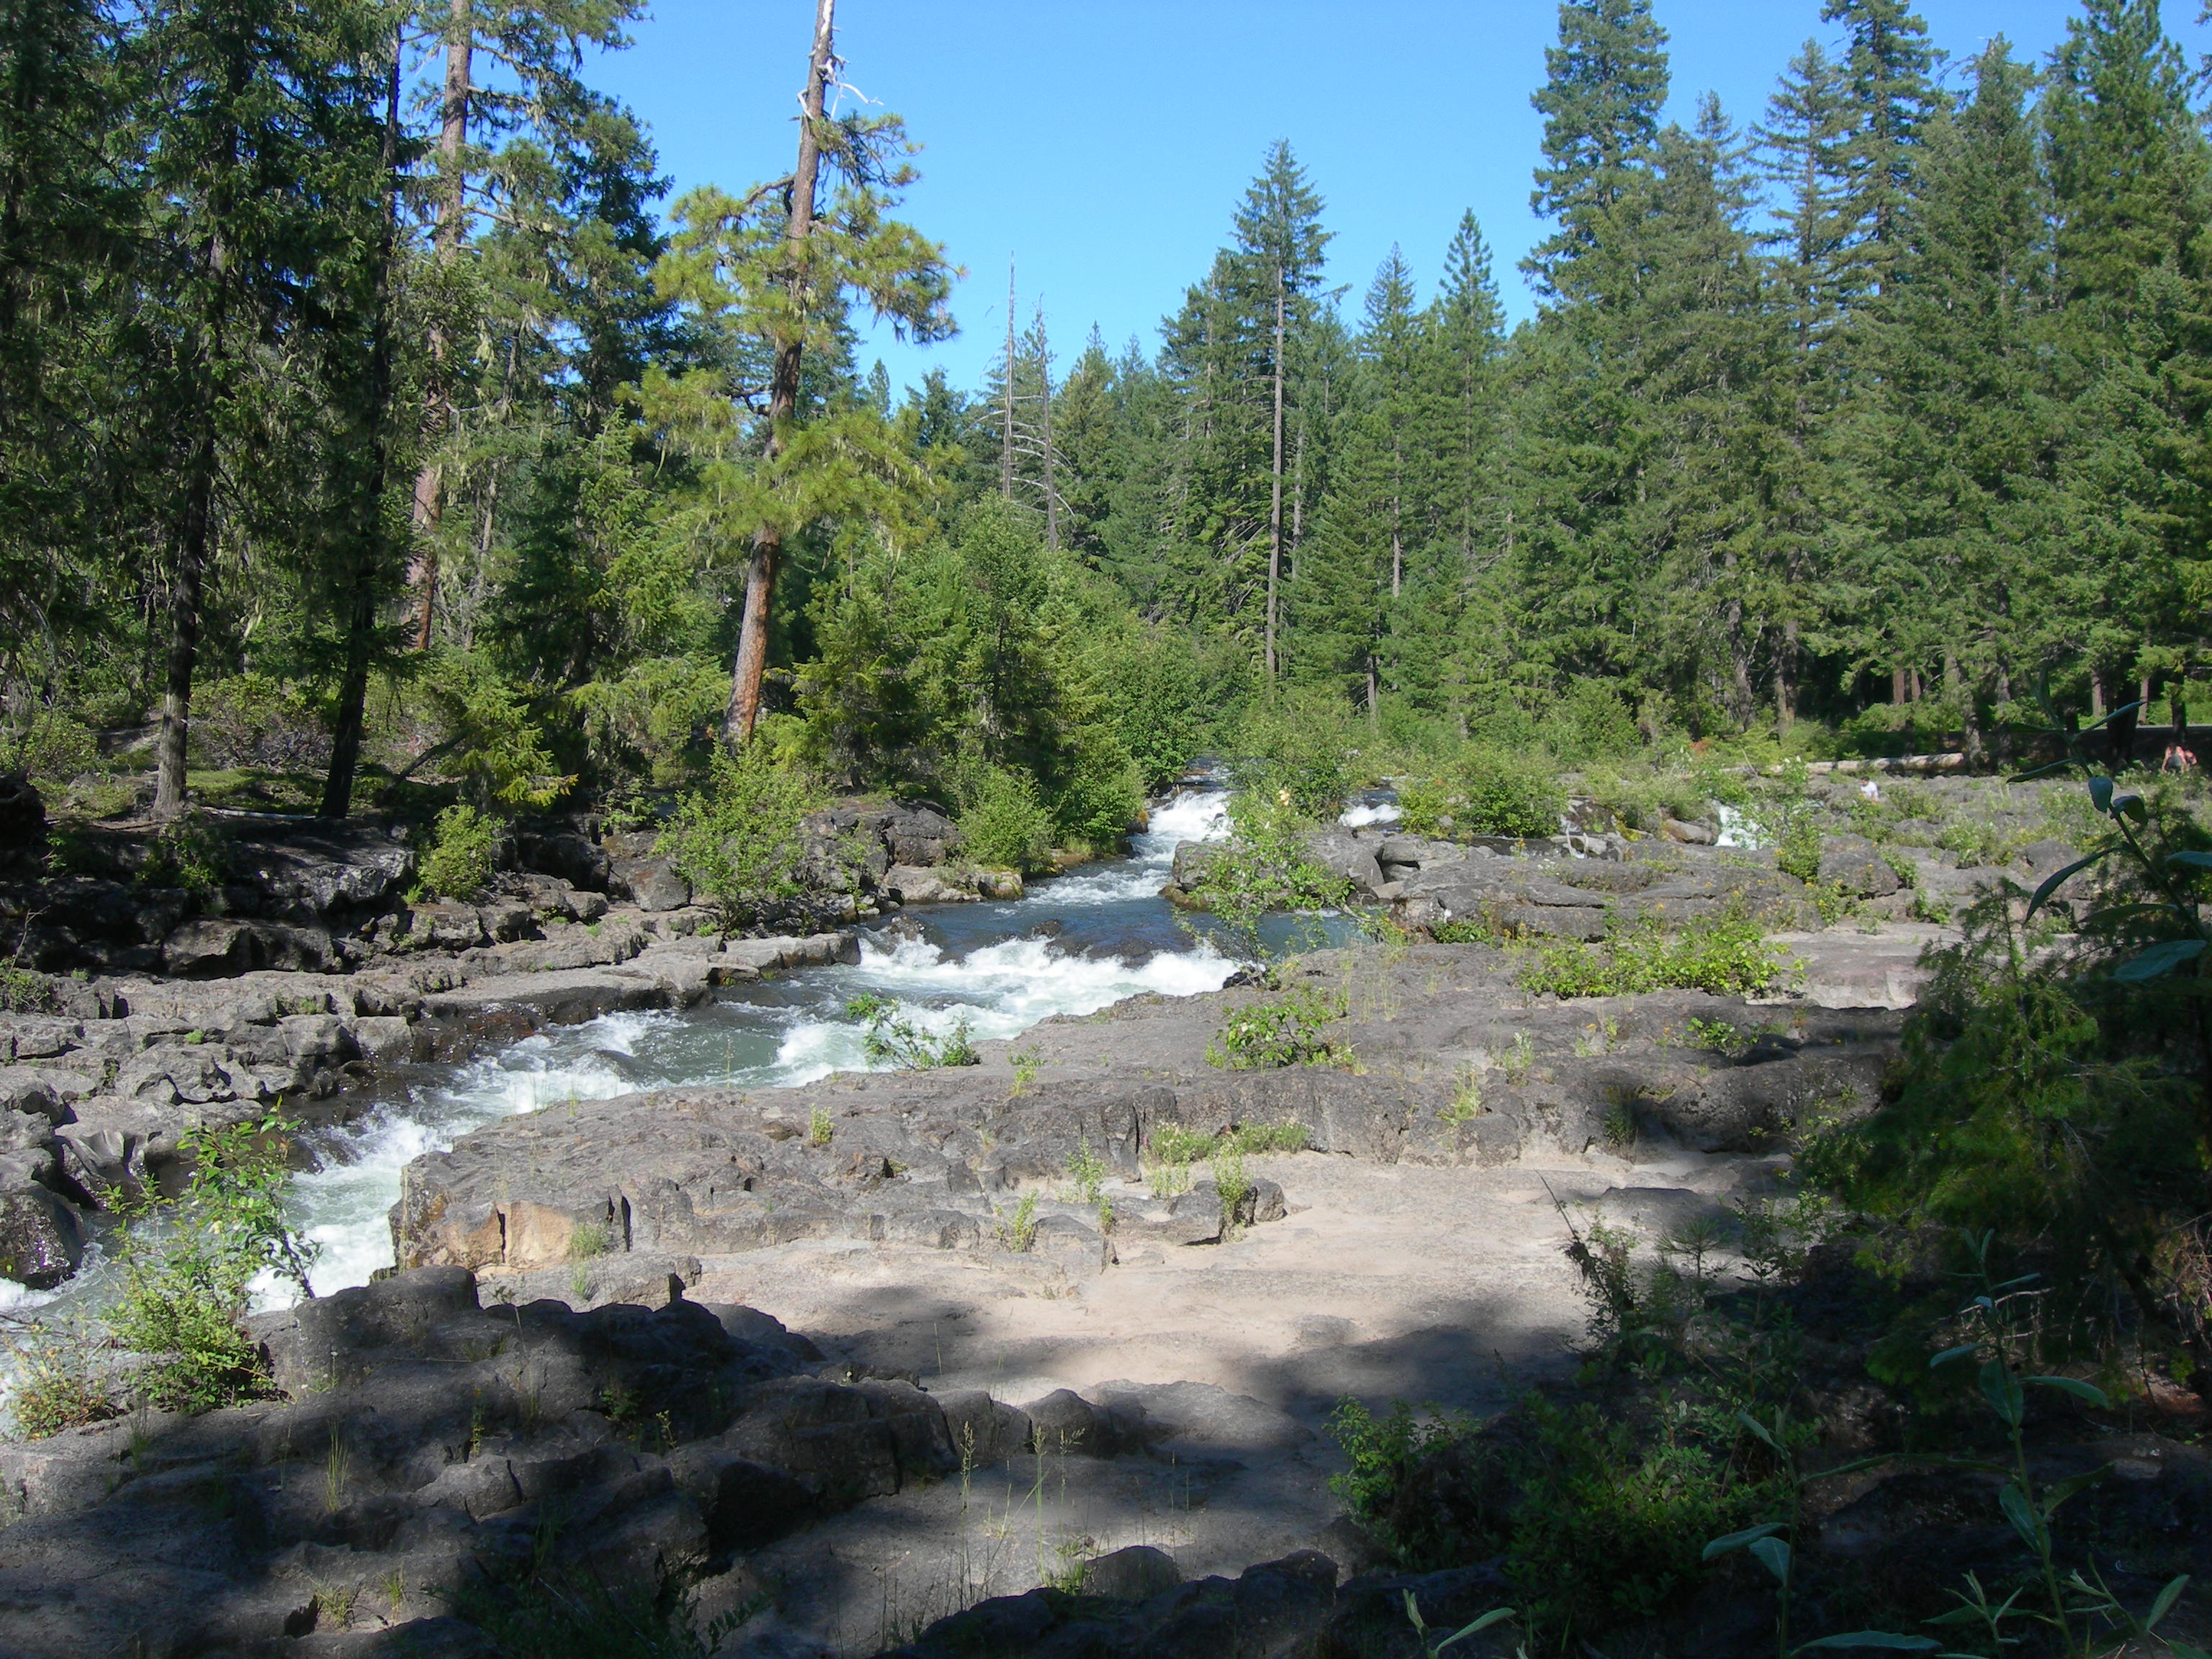 rogue river dating Rogue river, or snake river – hells canyon, id tuolumne river, ca yampa river, co adult & singles vacations adventures just for you overview adventures.